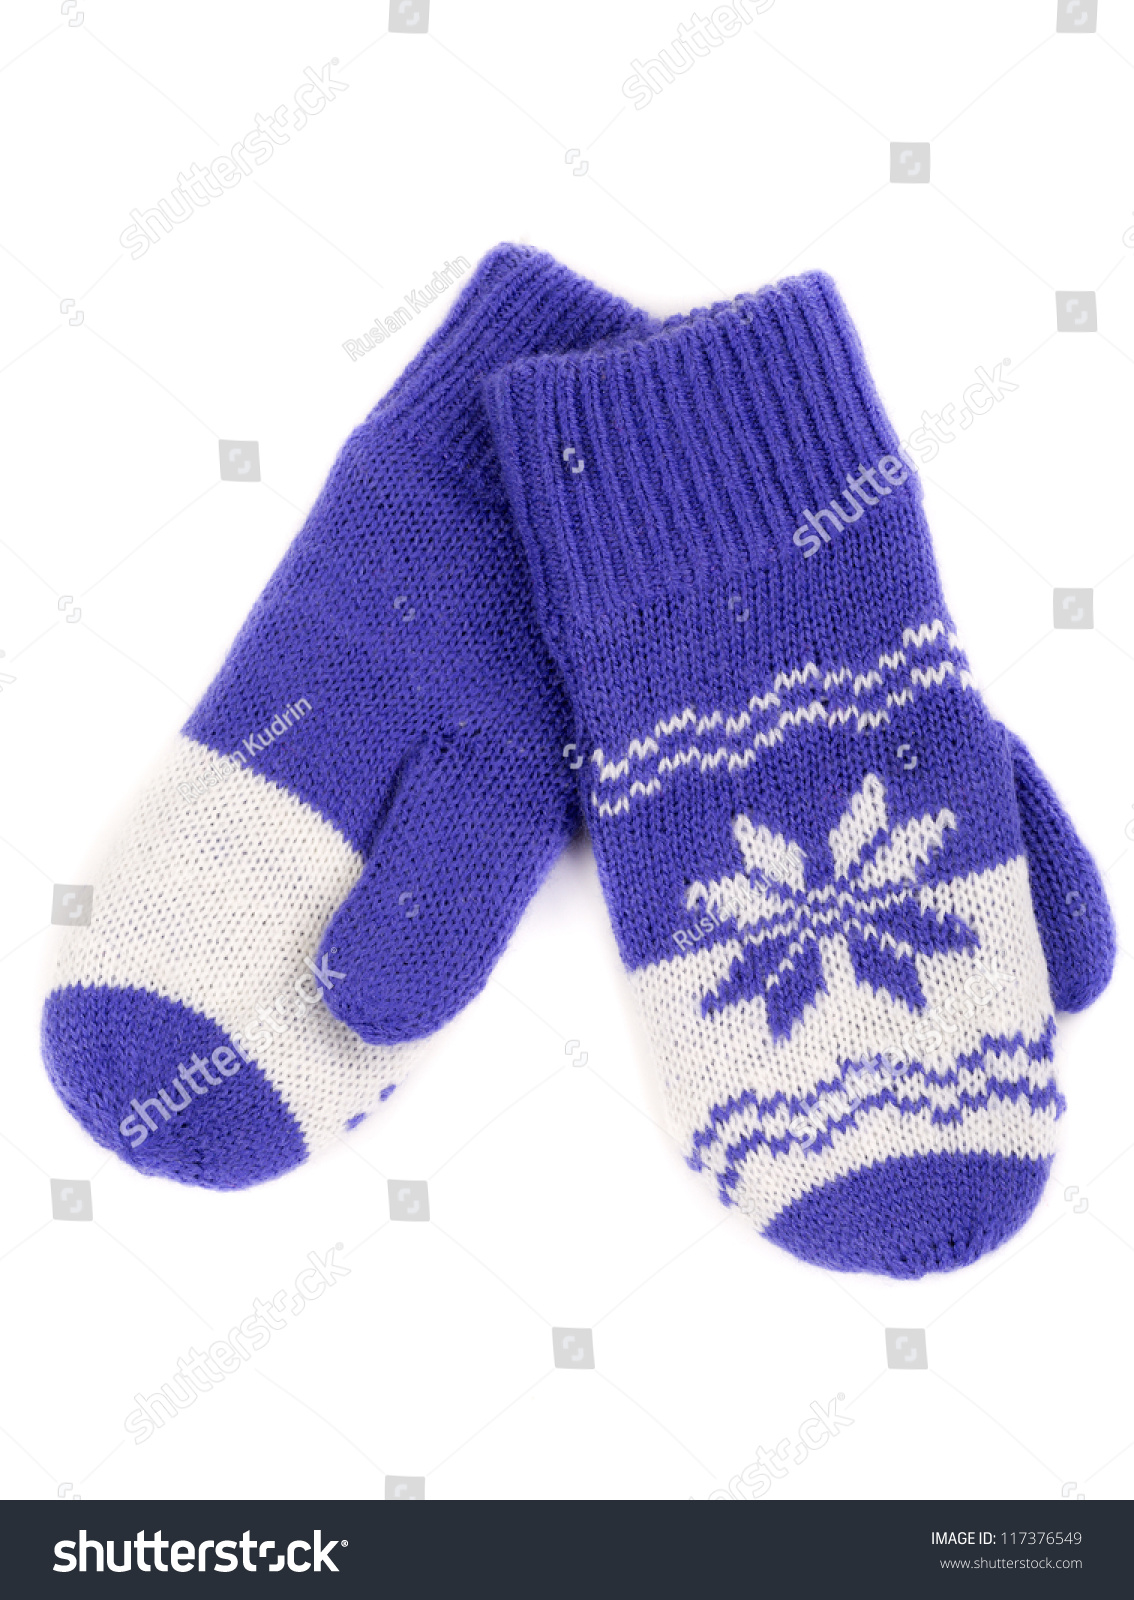 Knitting Pattern For Snowflake Mittens : Pair Of Knitted Mittens With Pattern Snowflake. Isolate On White. Stock Photo...